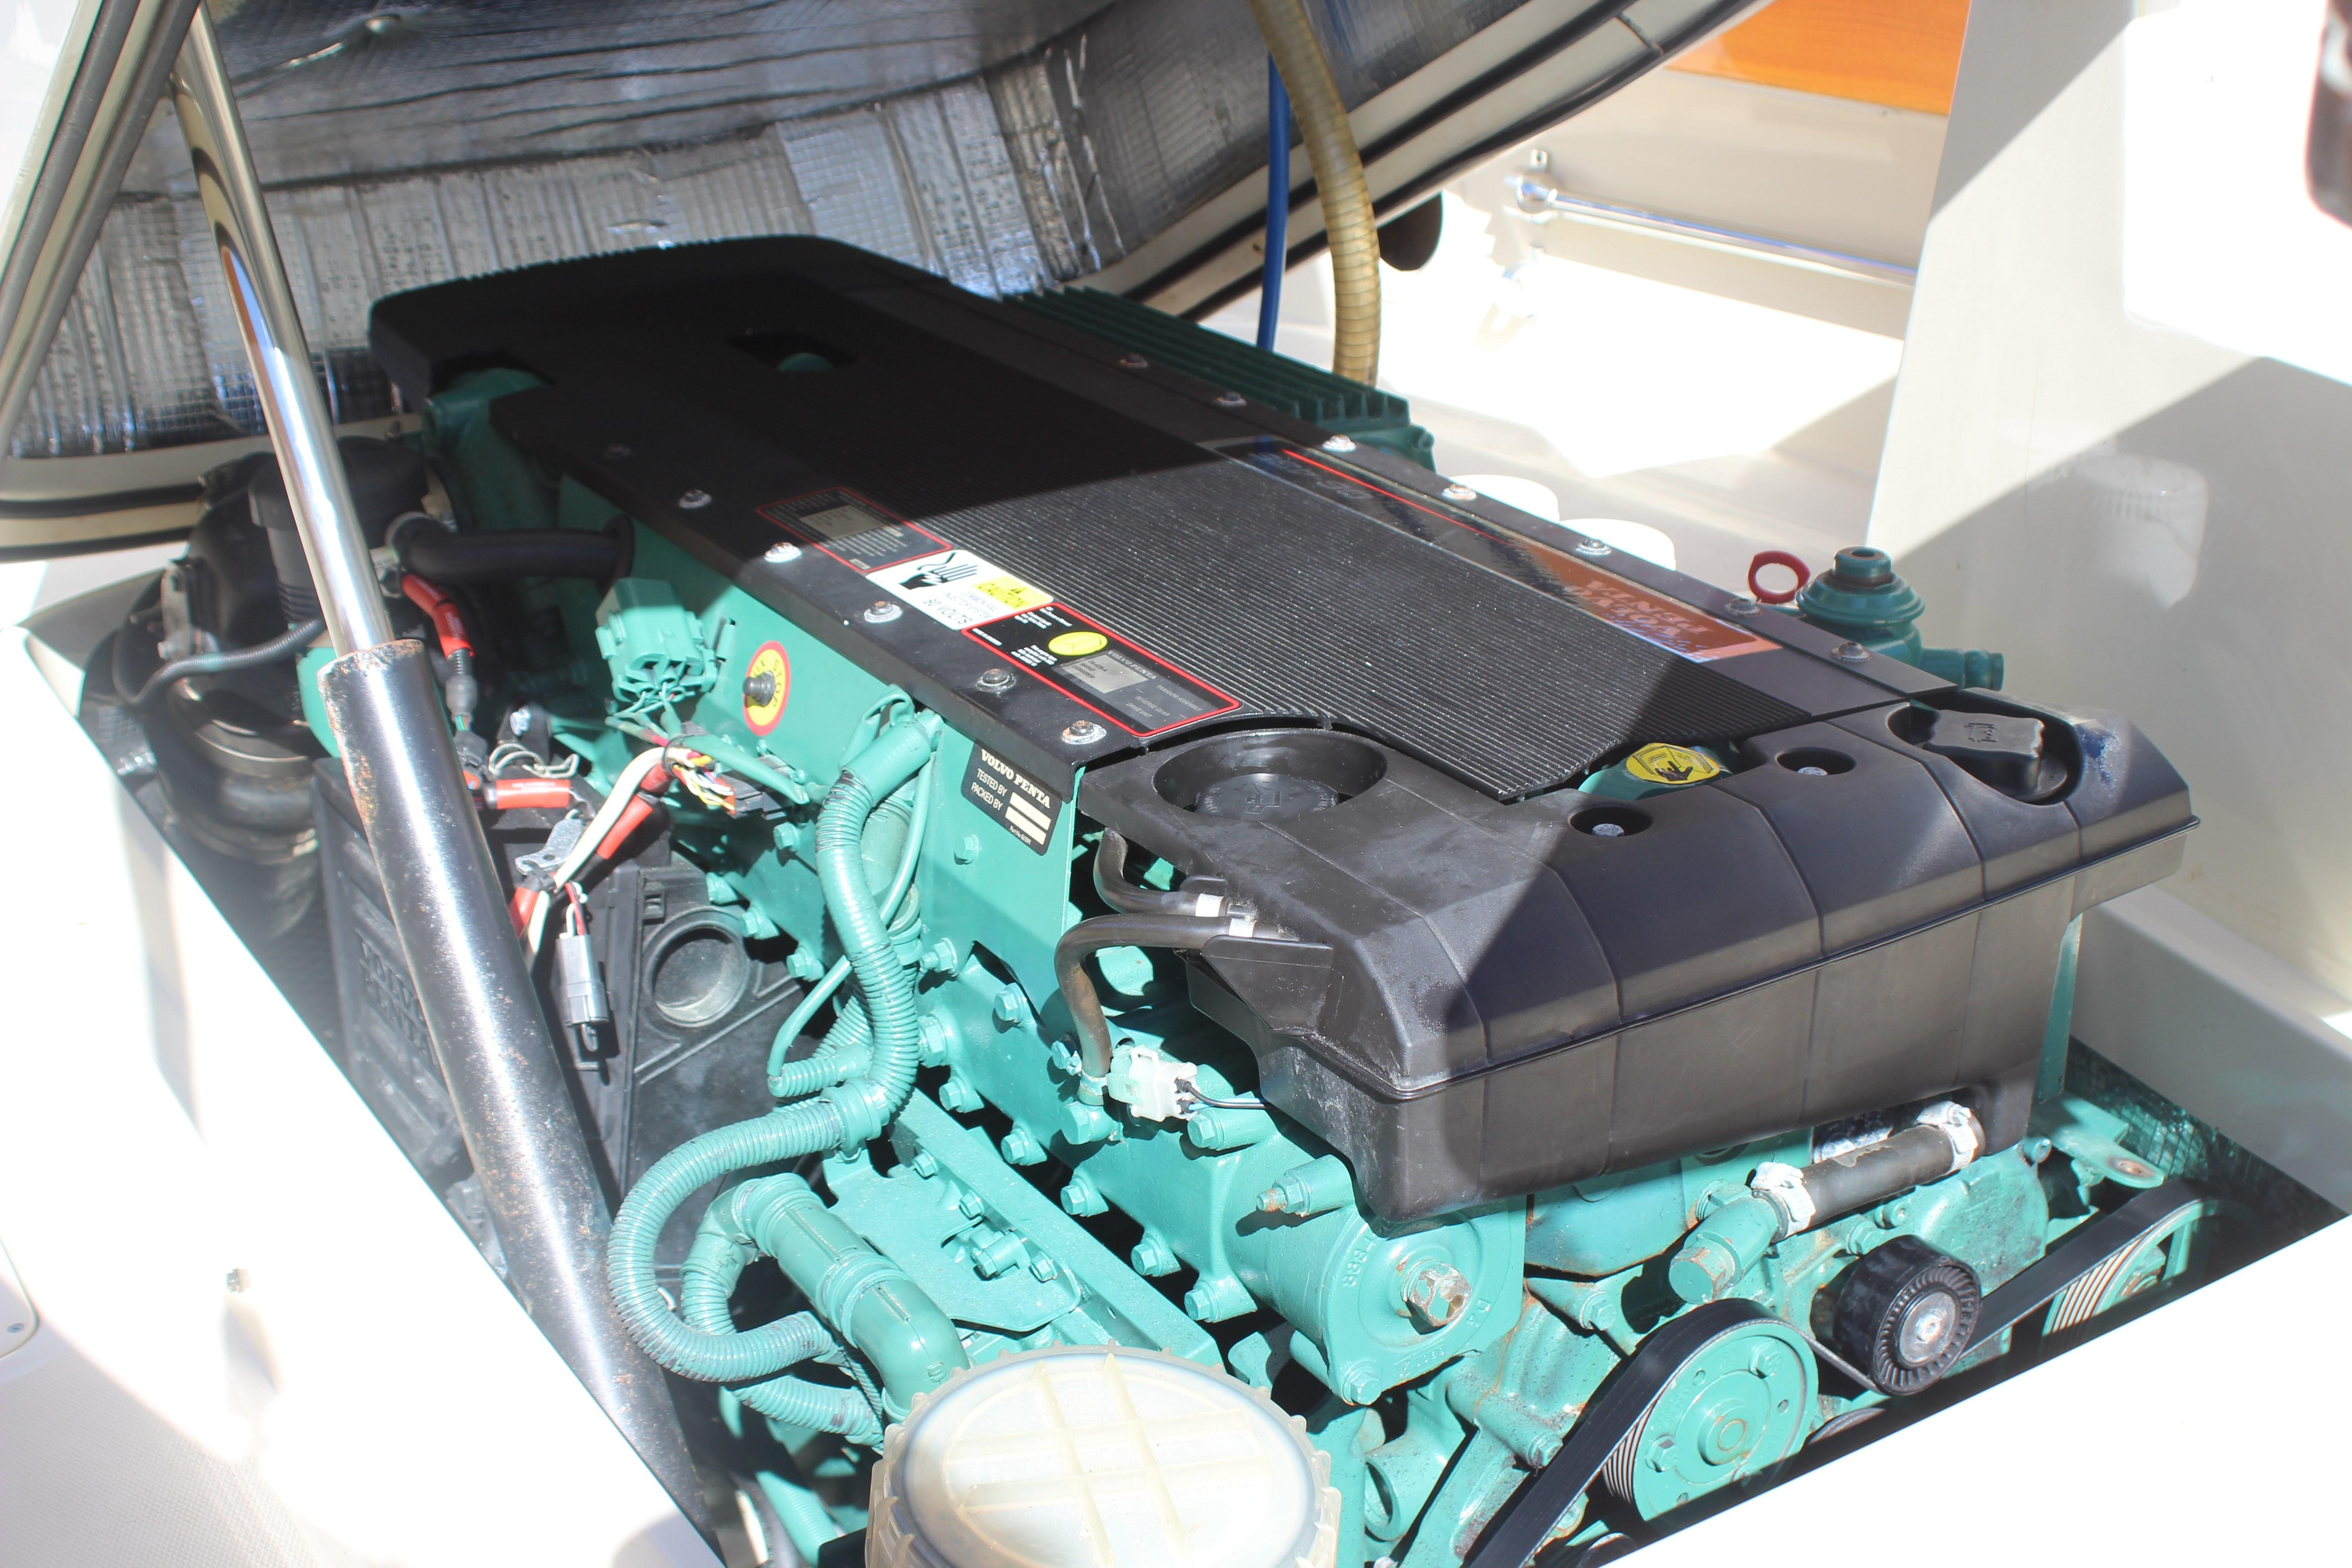 Engine box